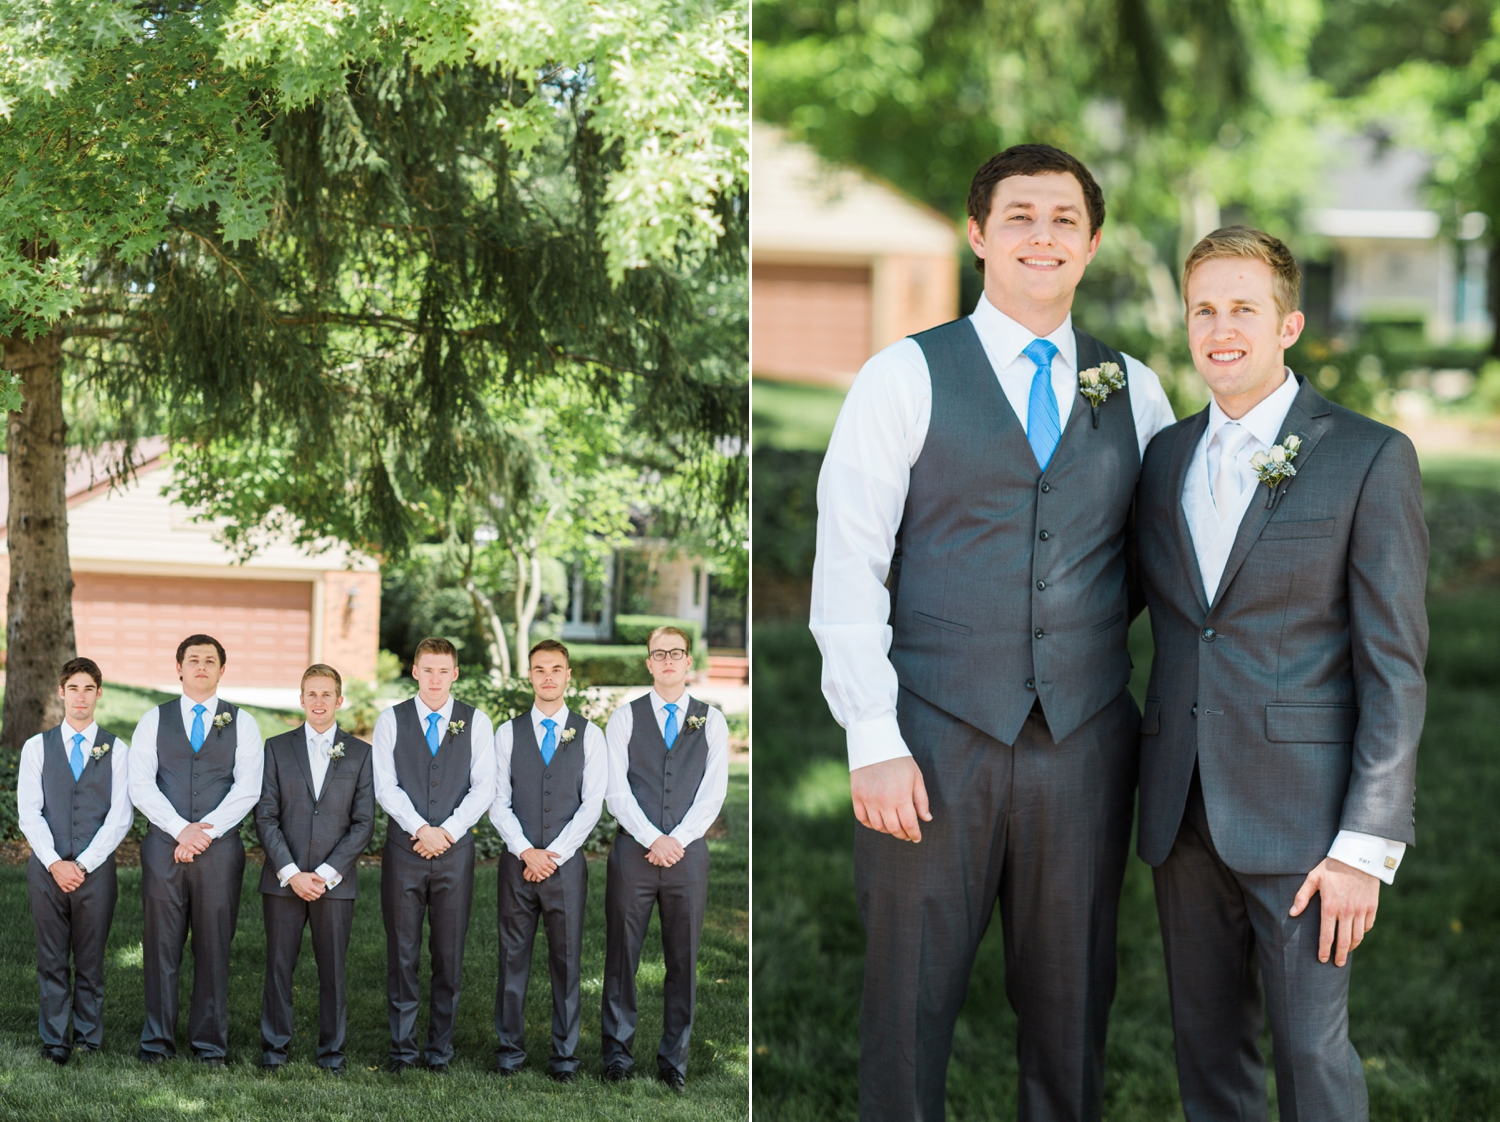 NCR_Country_Club_Kettering_Ohio_Wedding_Photography_Chloe_Luka_Photography_7113.jpg